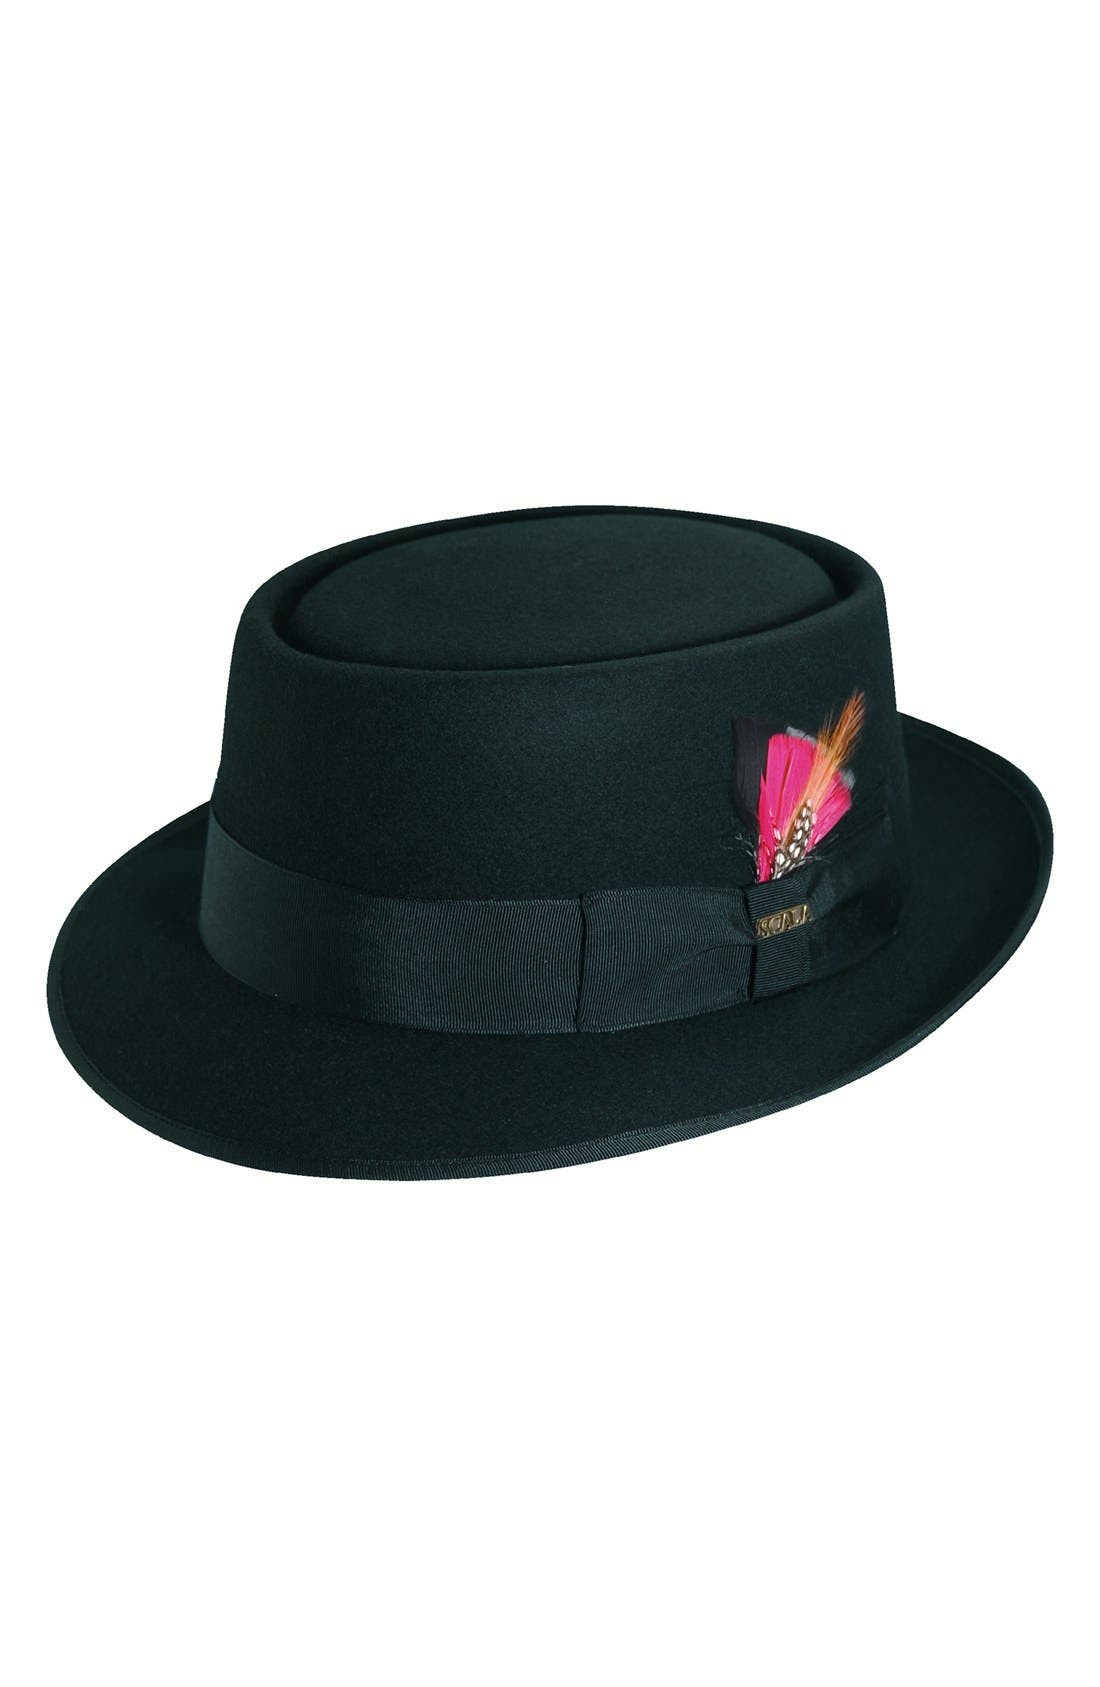 Wool Felt Porkpie Hat,                         Main,                         color, 001